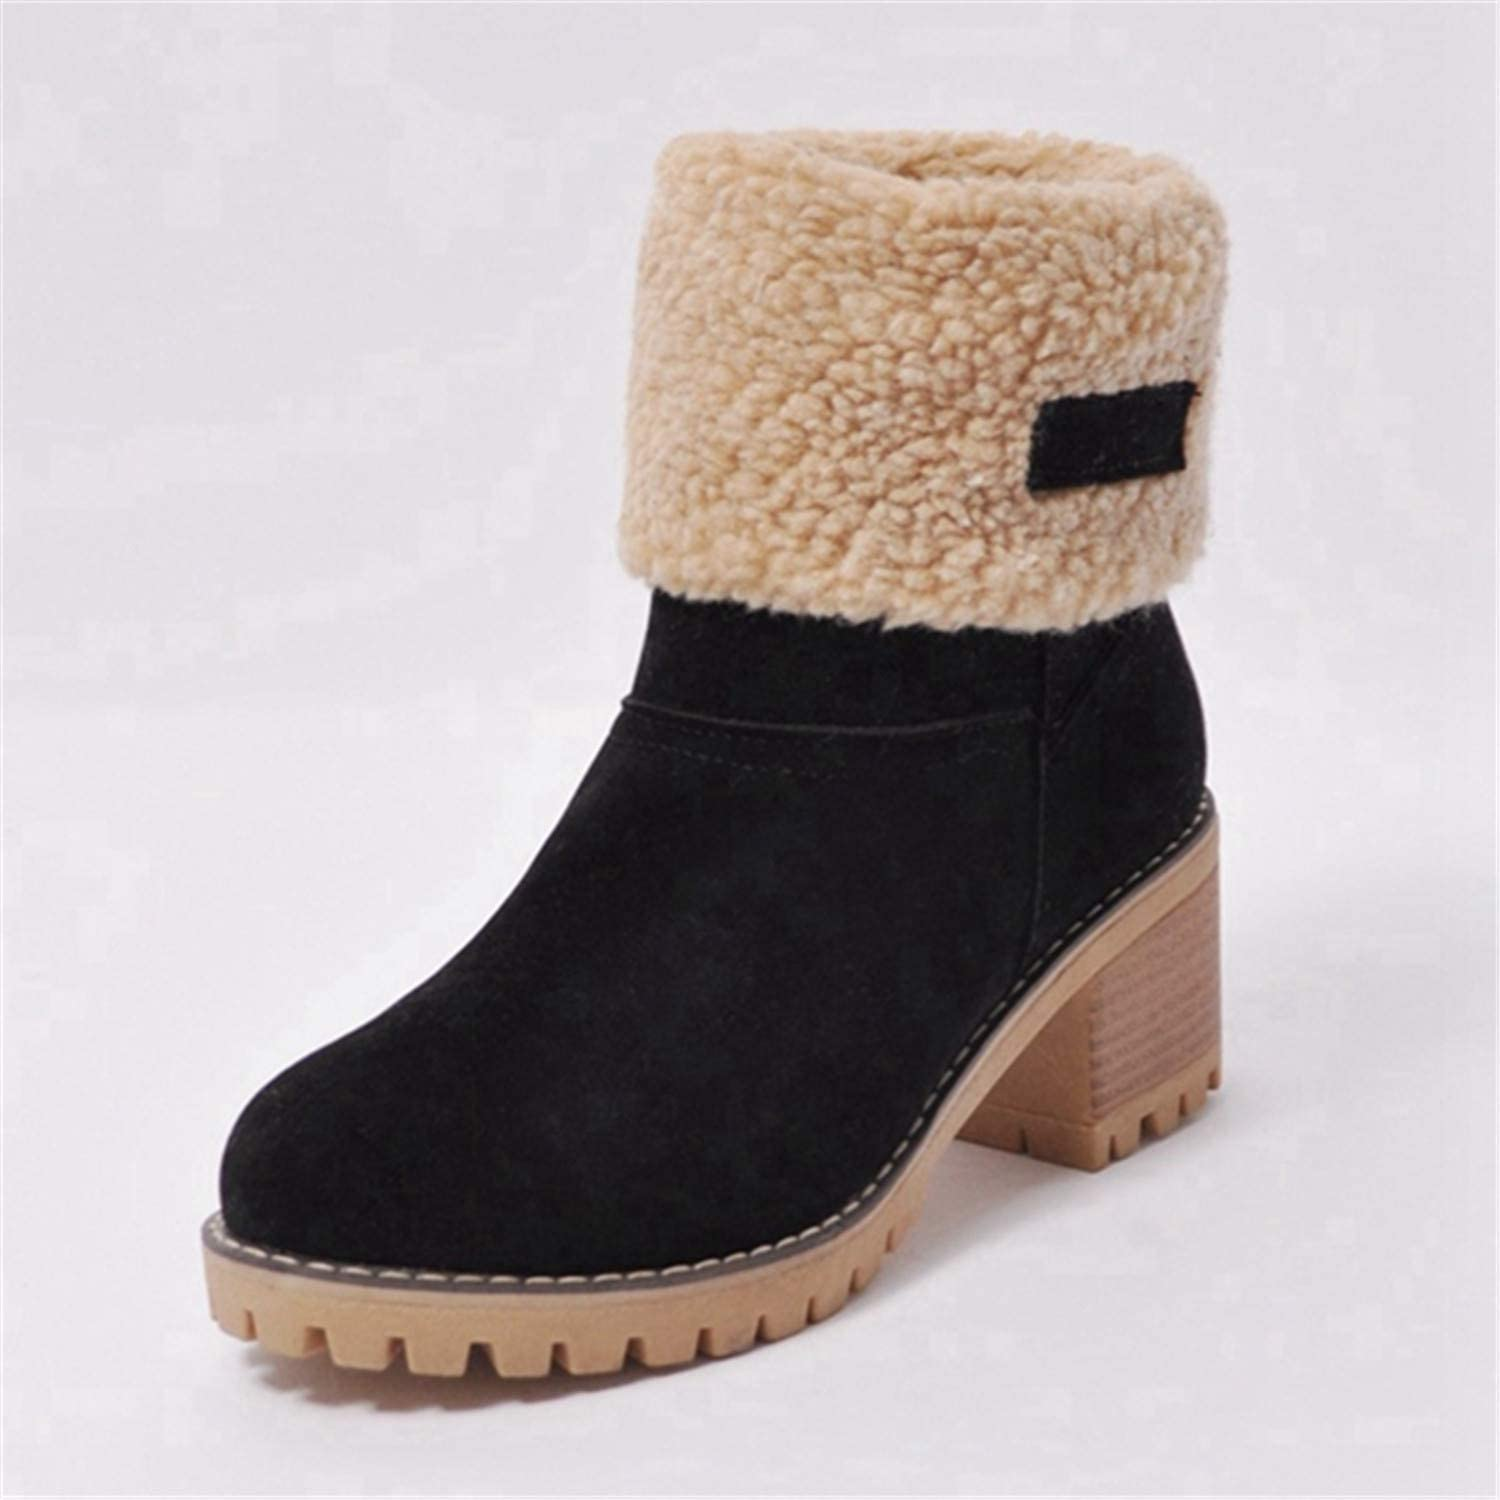 Leroyca Women Boots Female Winter shoes Woman Fur Warm Snow Boots Square High Heel Ankle Boots